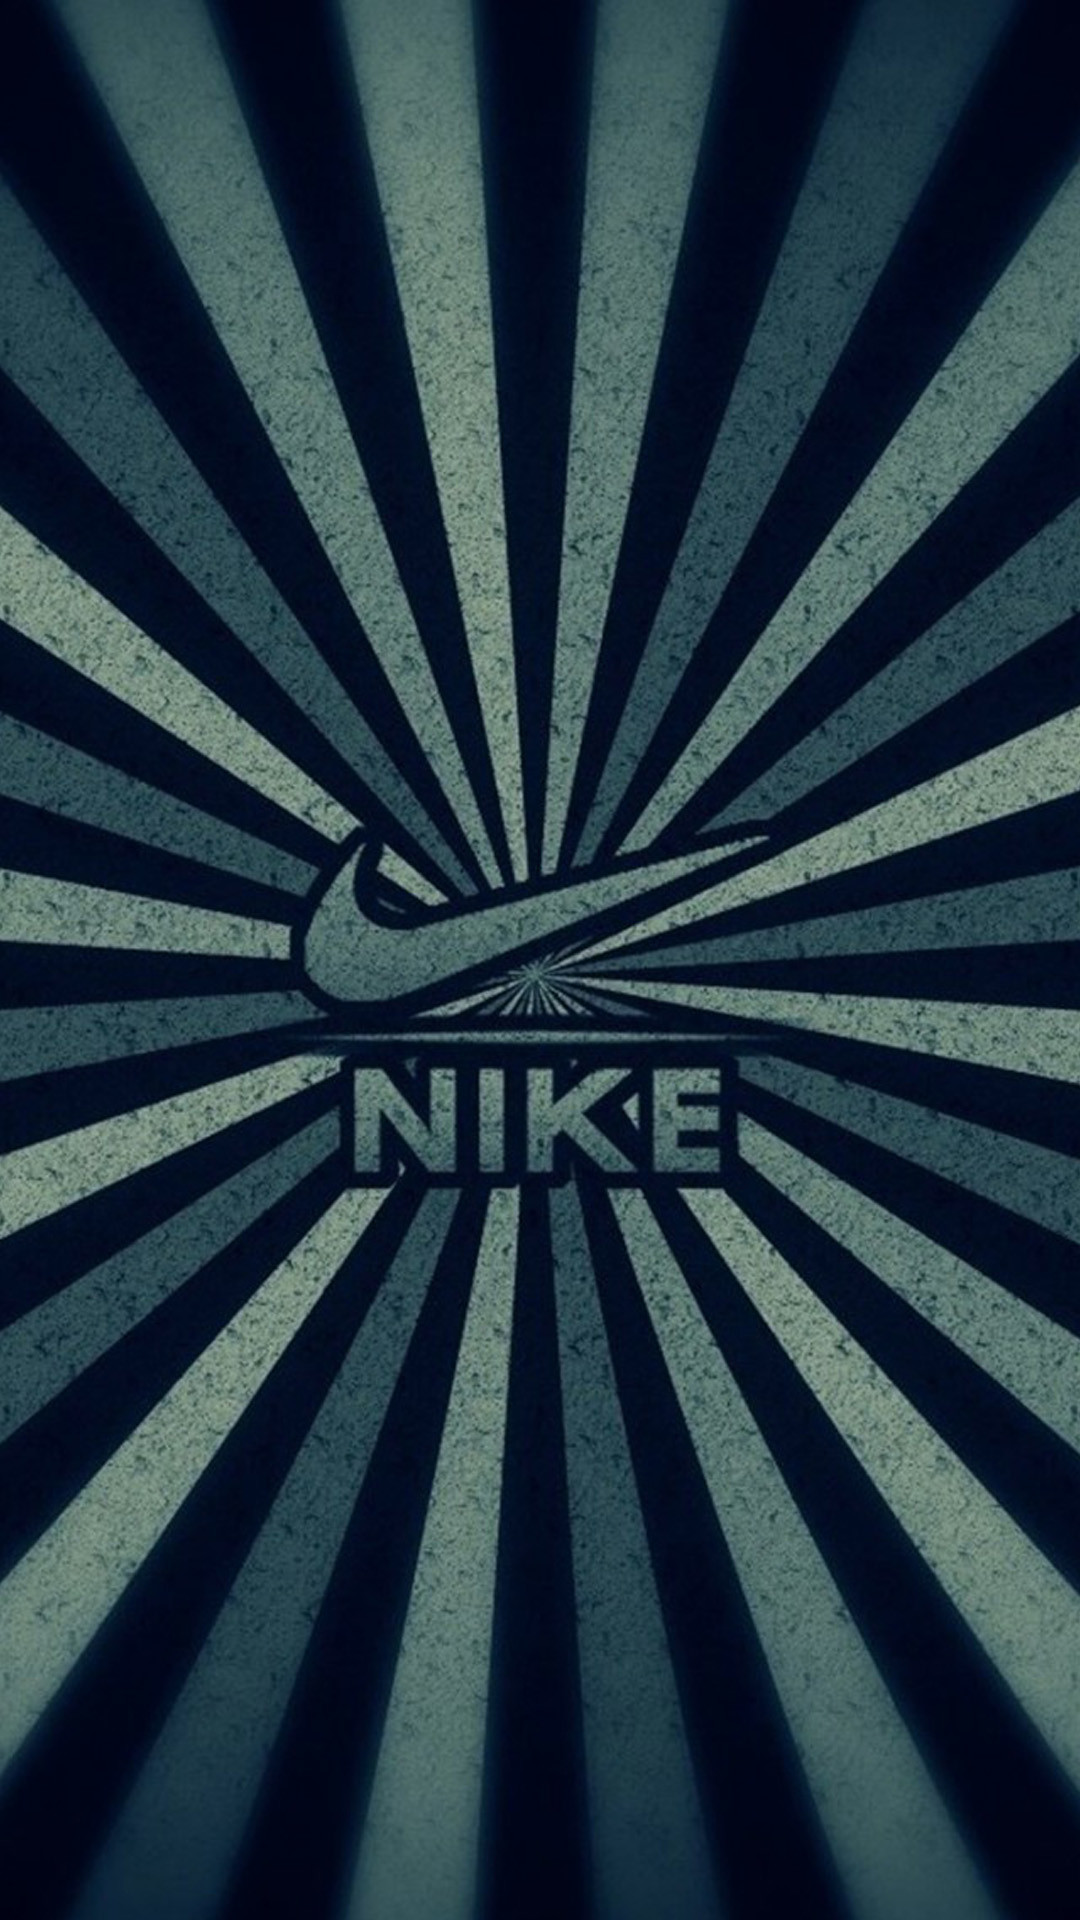 1080x1920 Nike LOGO 04 S4 Wallpapers, Samsung Galaxy S4 Wallpapers